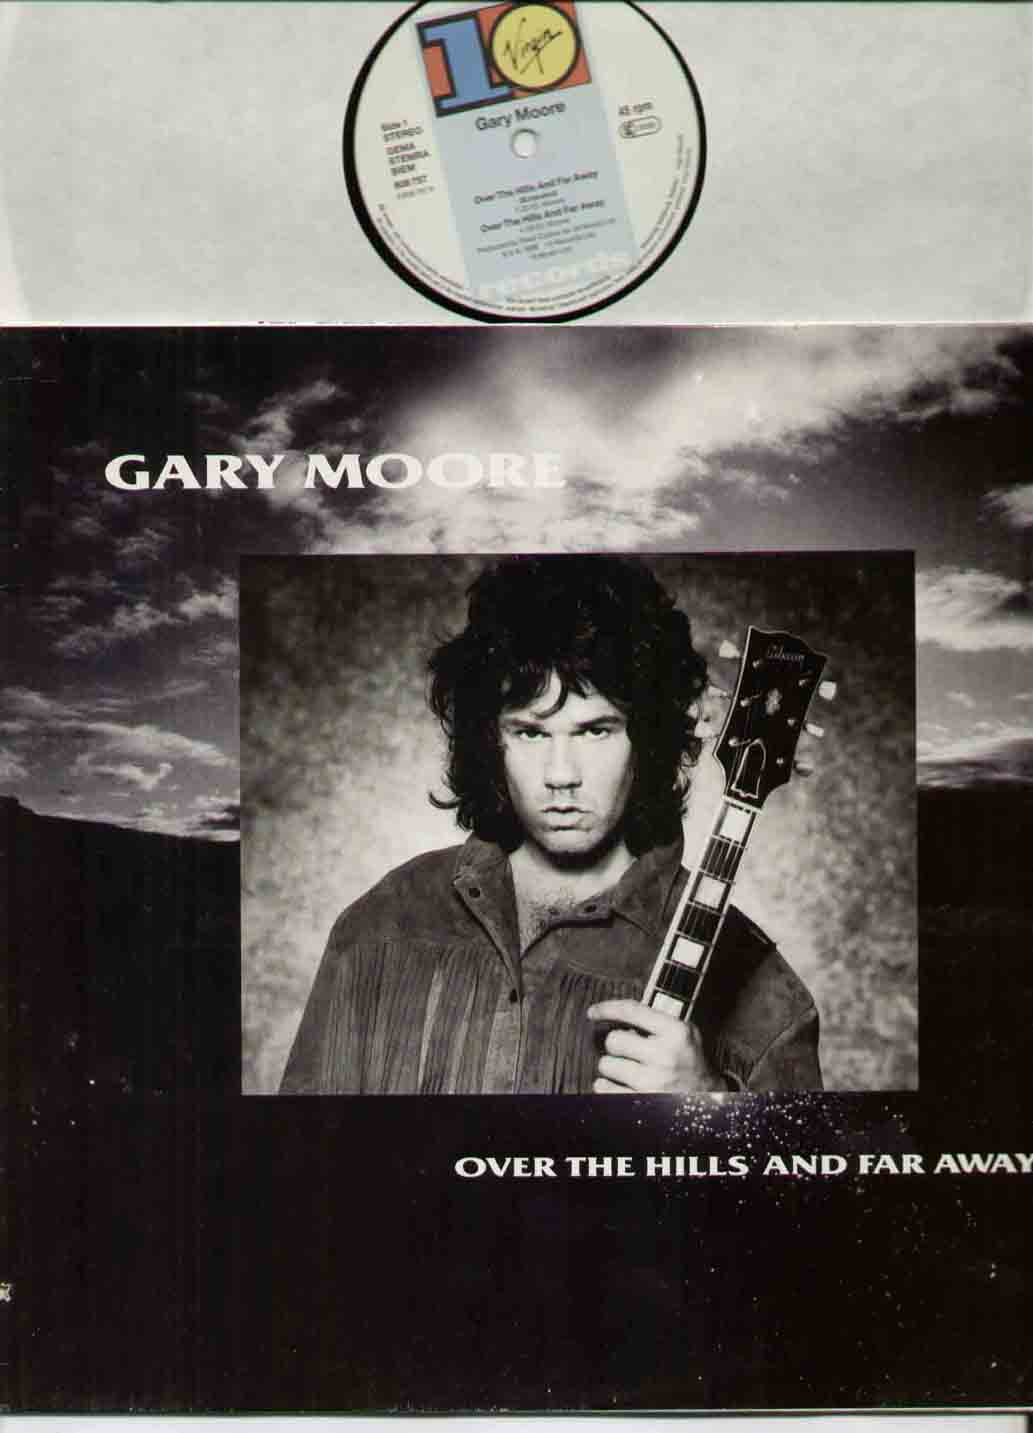 GARY MOORE - Over The Hills Album